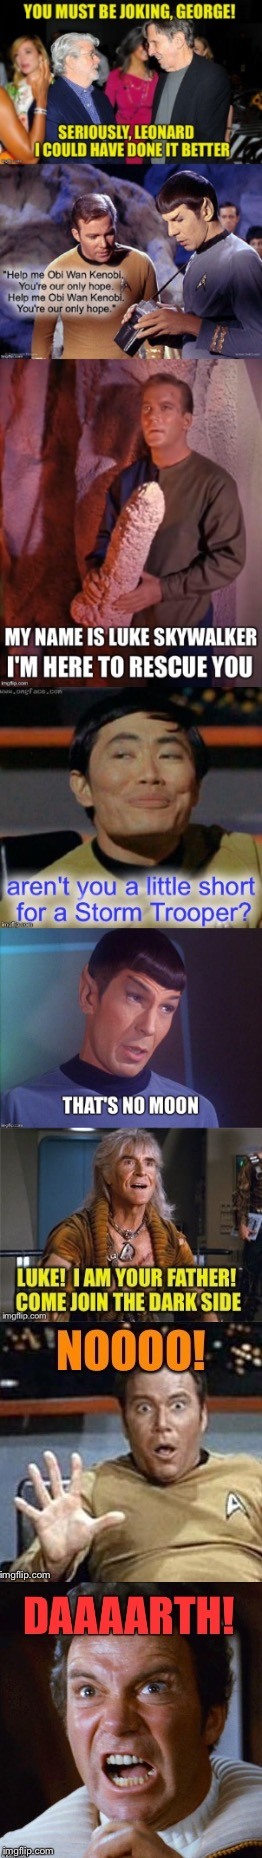 Mirror Mirror | image tagged in star wars,star trek | made w/ Imgflip meme maker